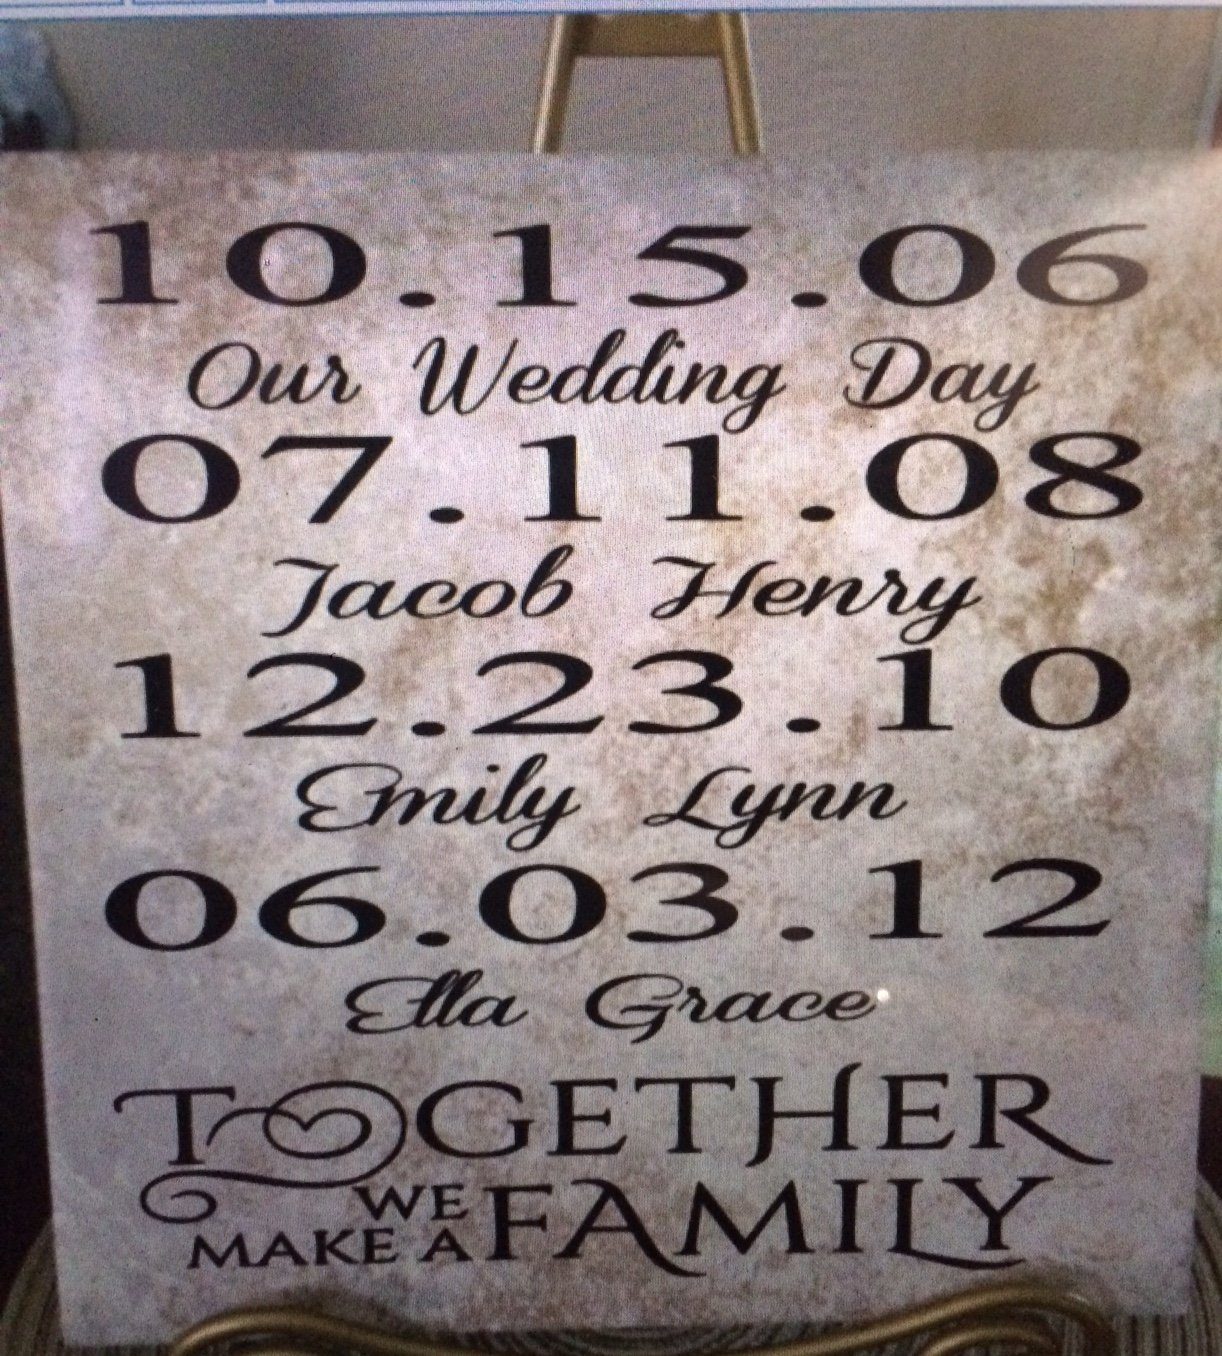 Together we make a family wedding anniversary personalized ceramic together we make a family wedding anniversary personalized ceramic tile 12 x 12 custom gift love dailygadgetfo Choice Image